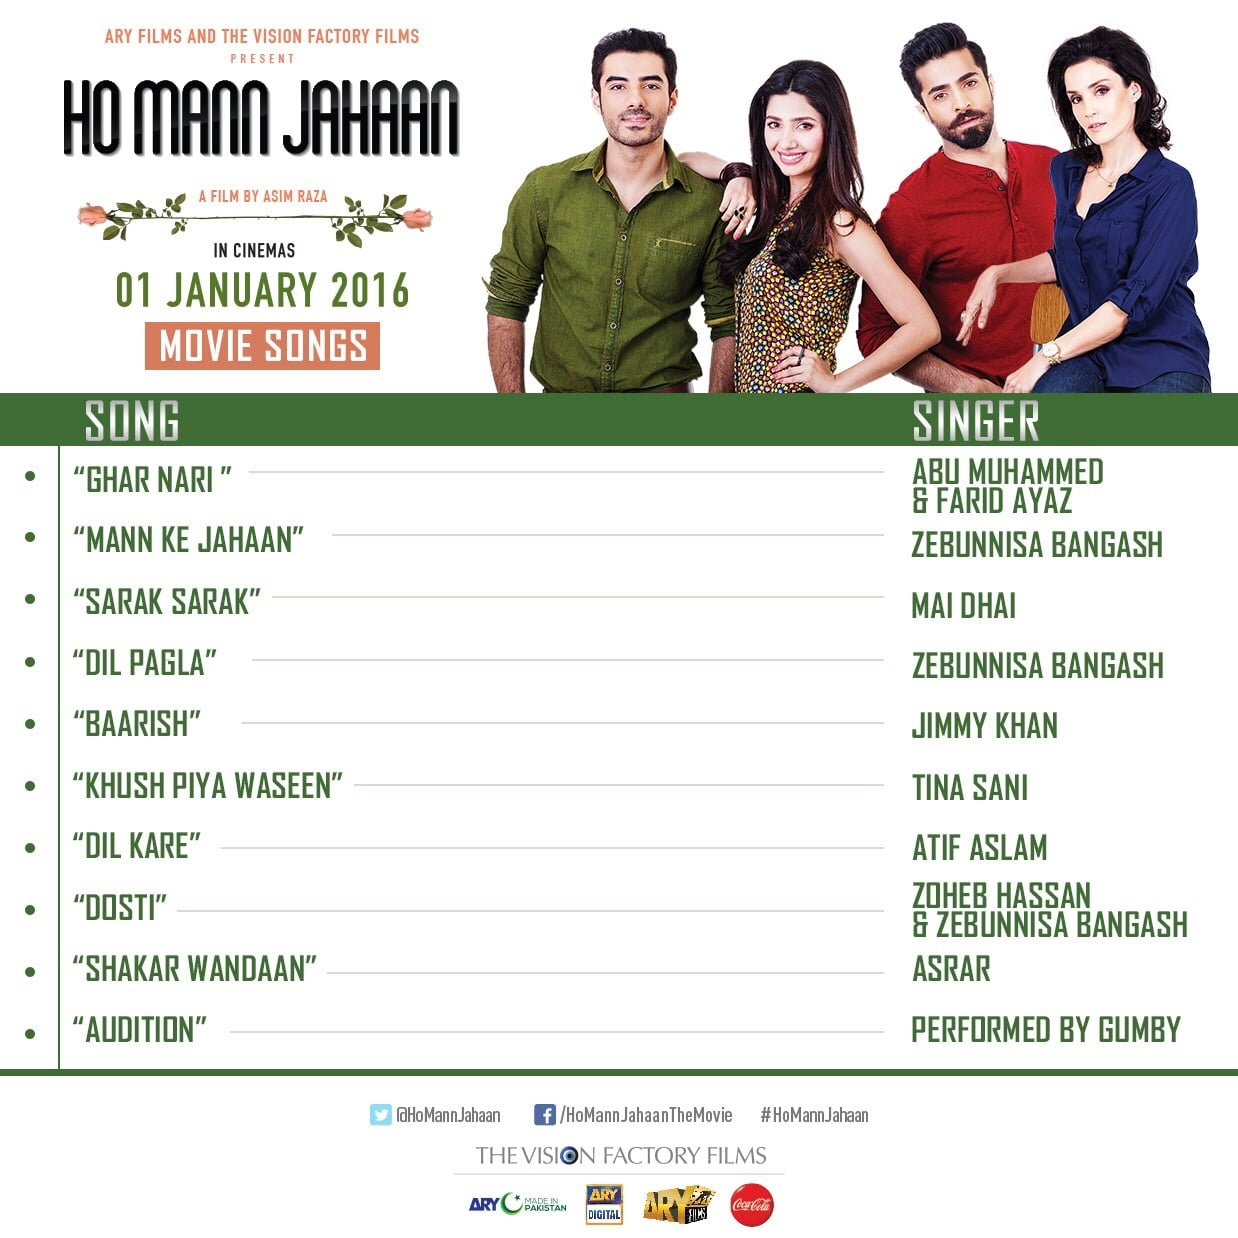 Ho Mann Jahaan film will be releasing nationwide on 1st January 2016